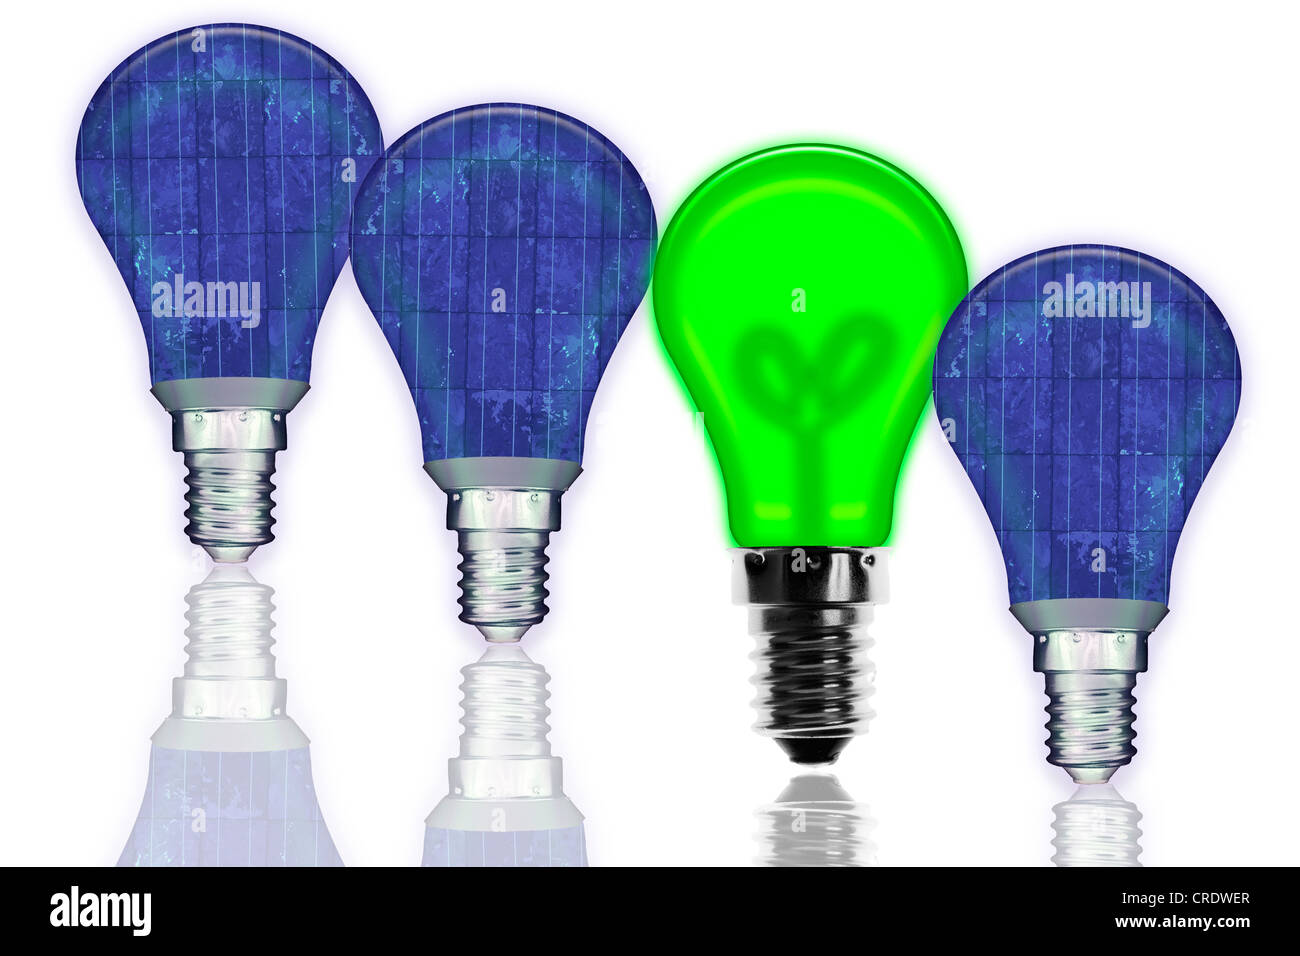 Light bulbs with solar panels or green illumination - Stock Image